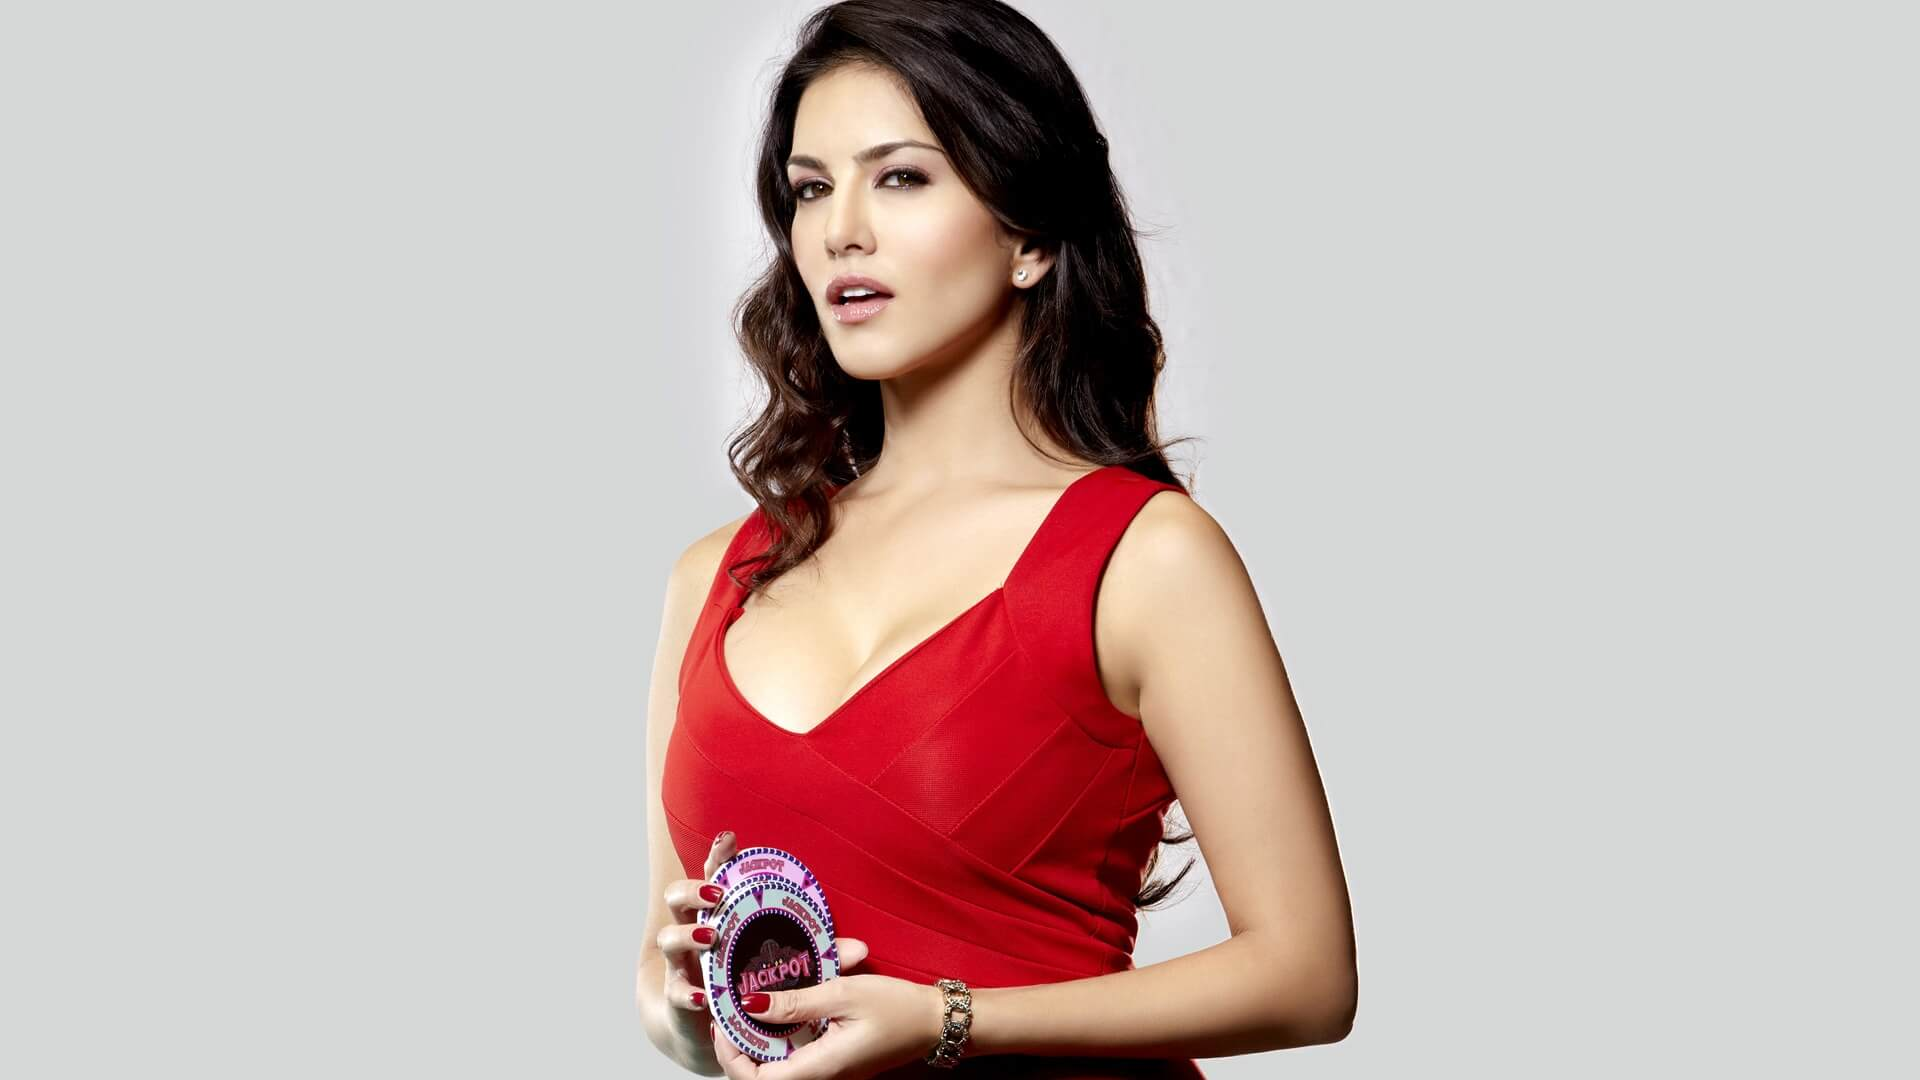 How to Meet Sunny Leone Personally